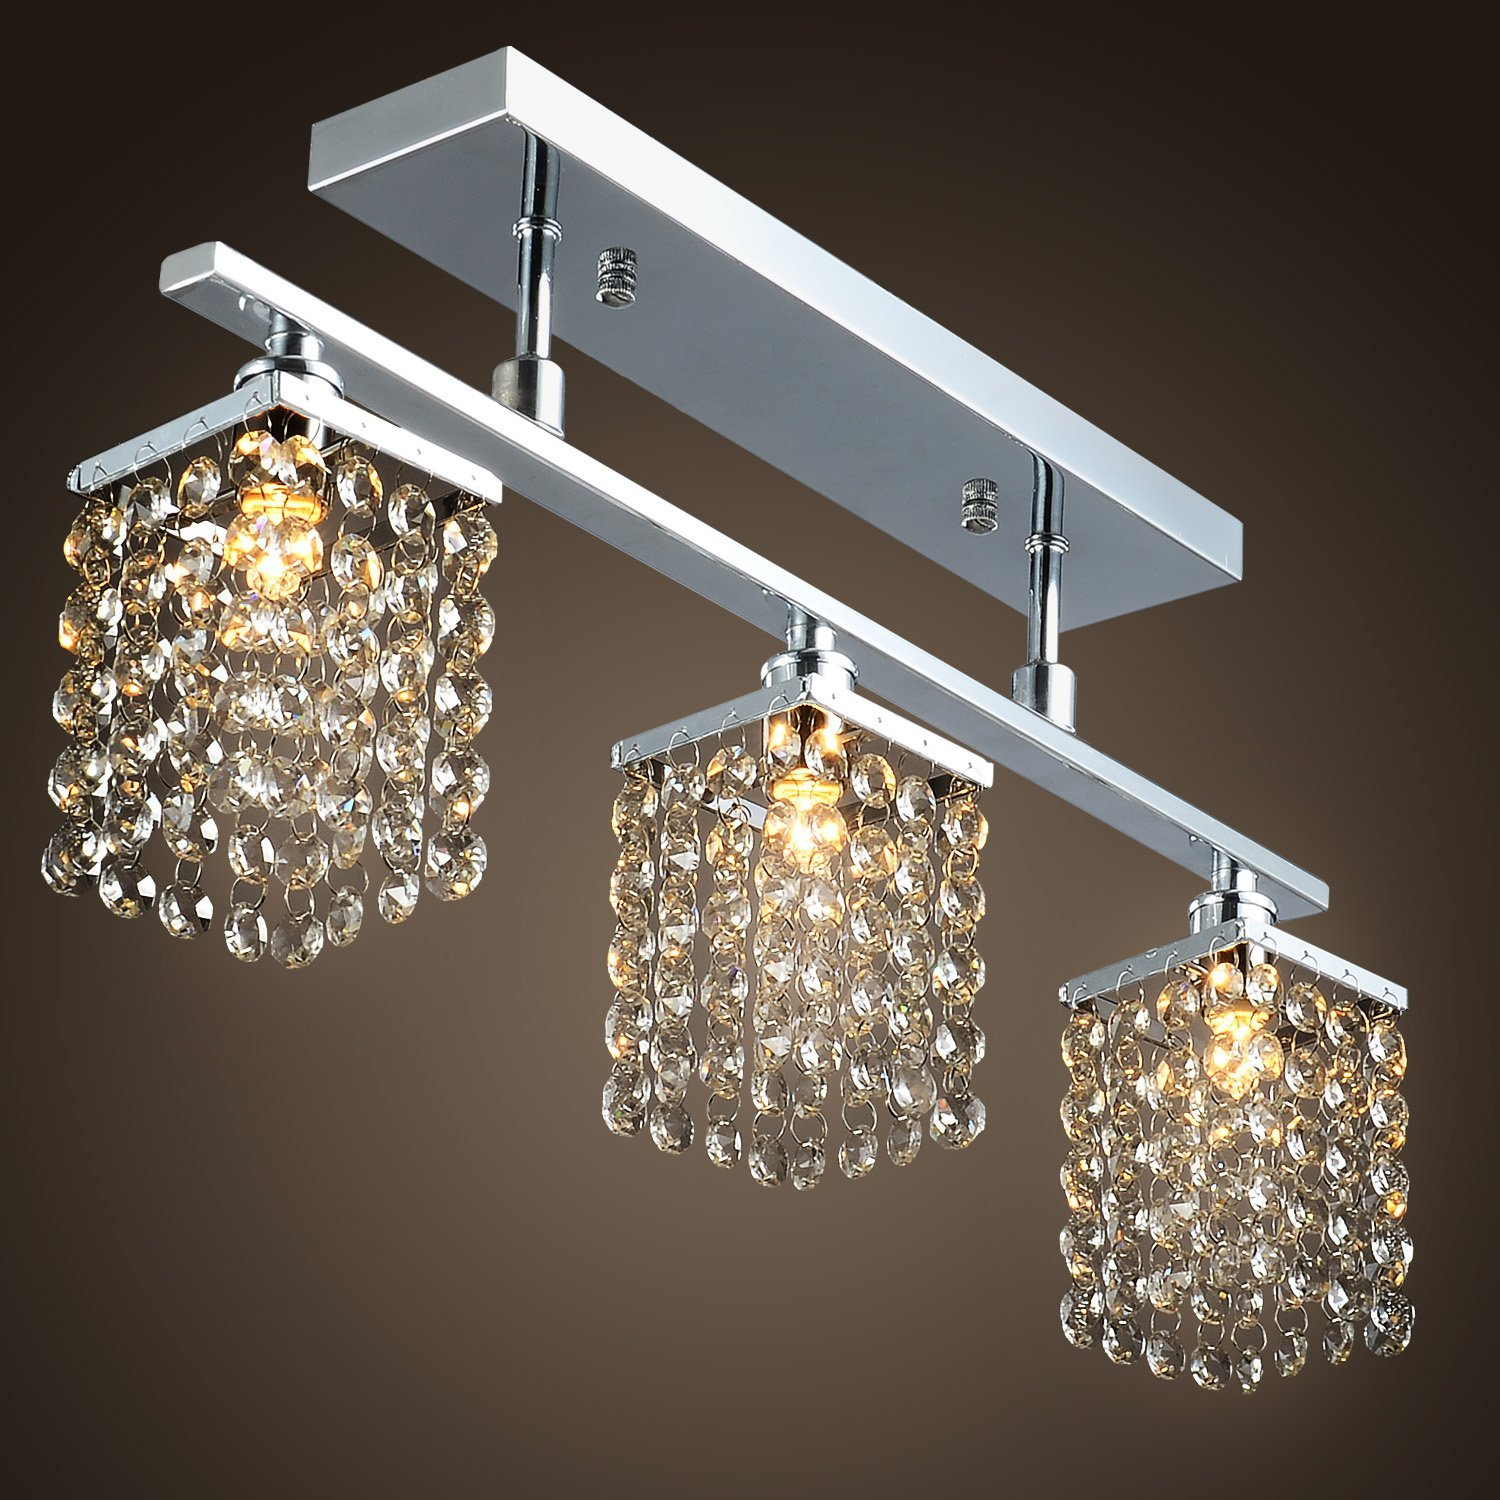 3 light hanging crystal linear chandelier with fixture for Modern hanging pendant lights